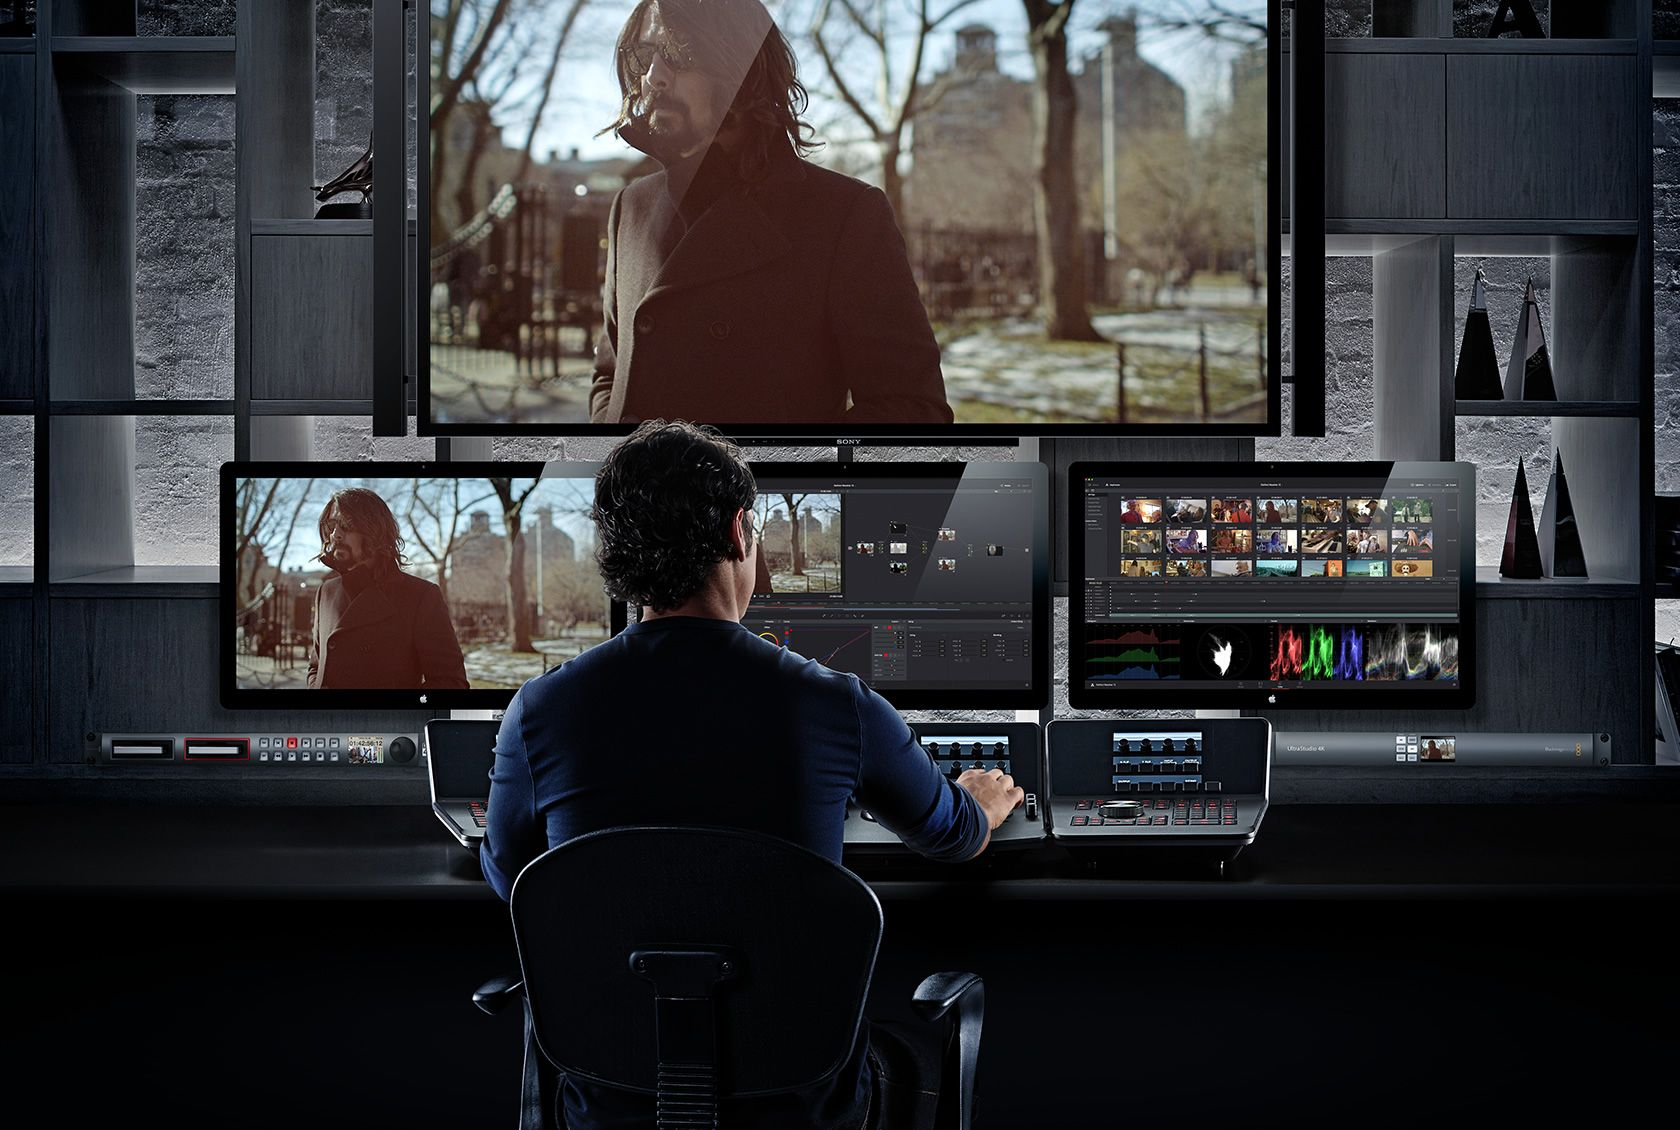 Blackmagic Design Davinci Resolve 12 Control Blackmagic Design Editing Suite Video Editing Studio